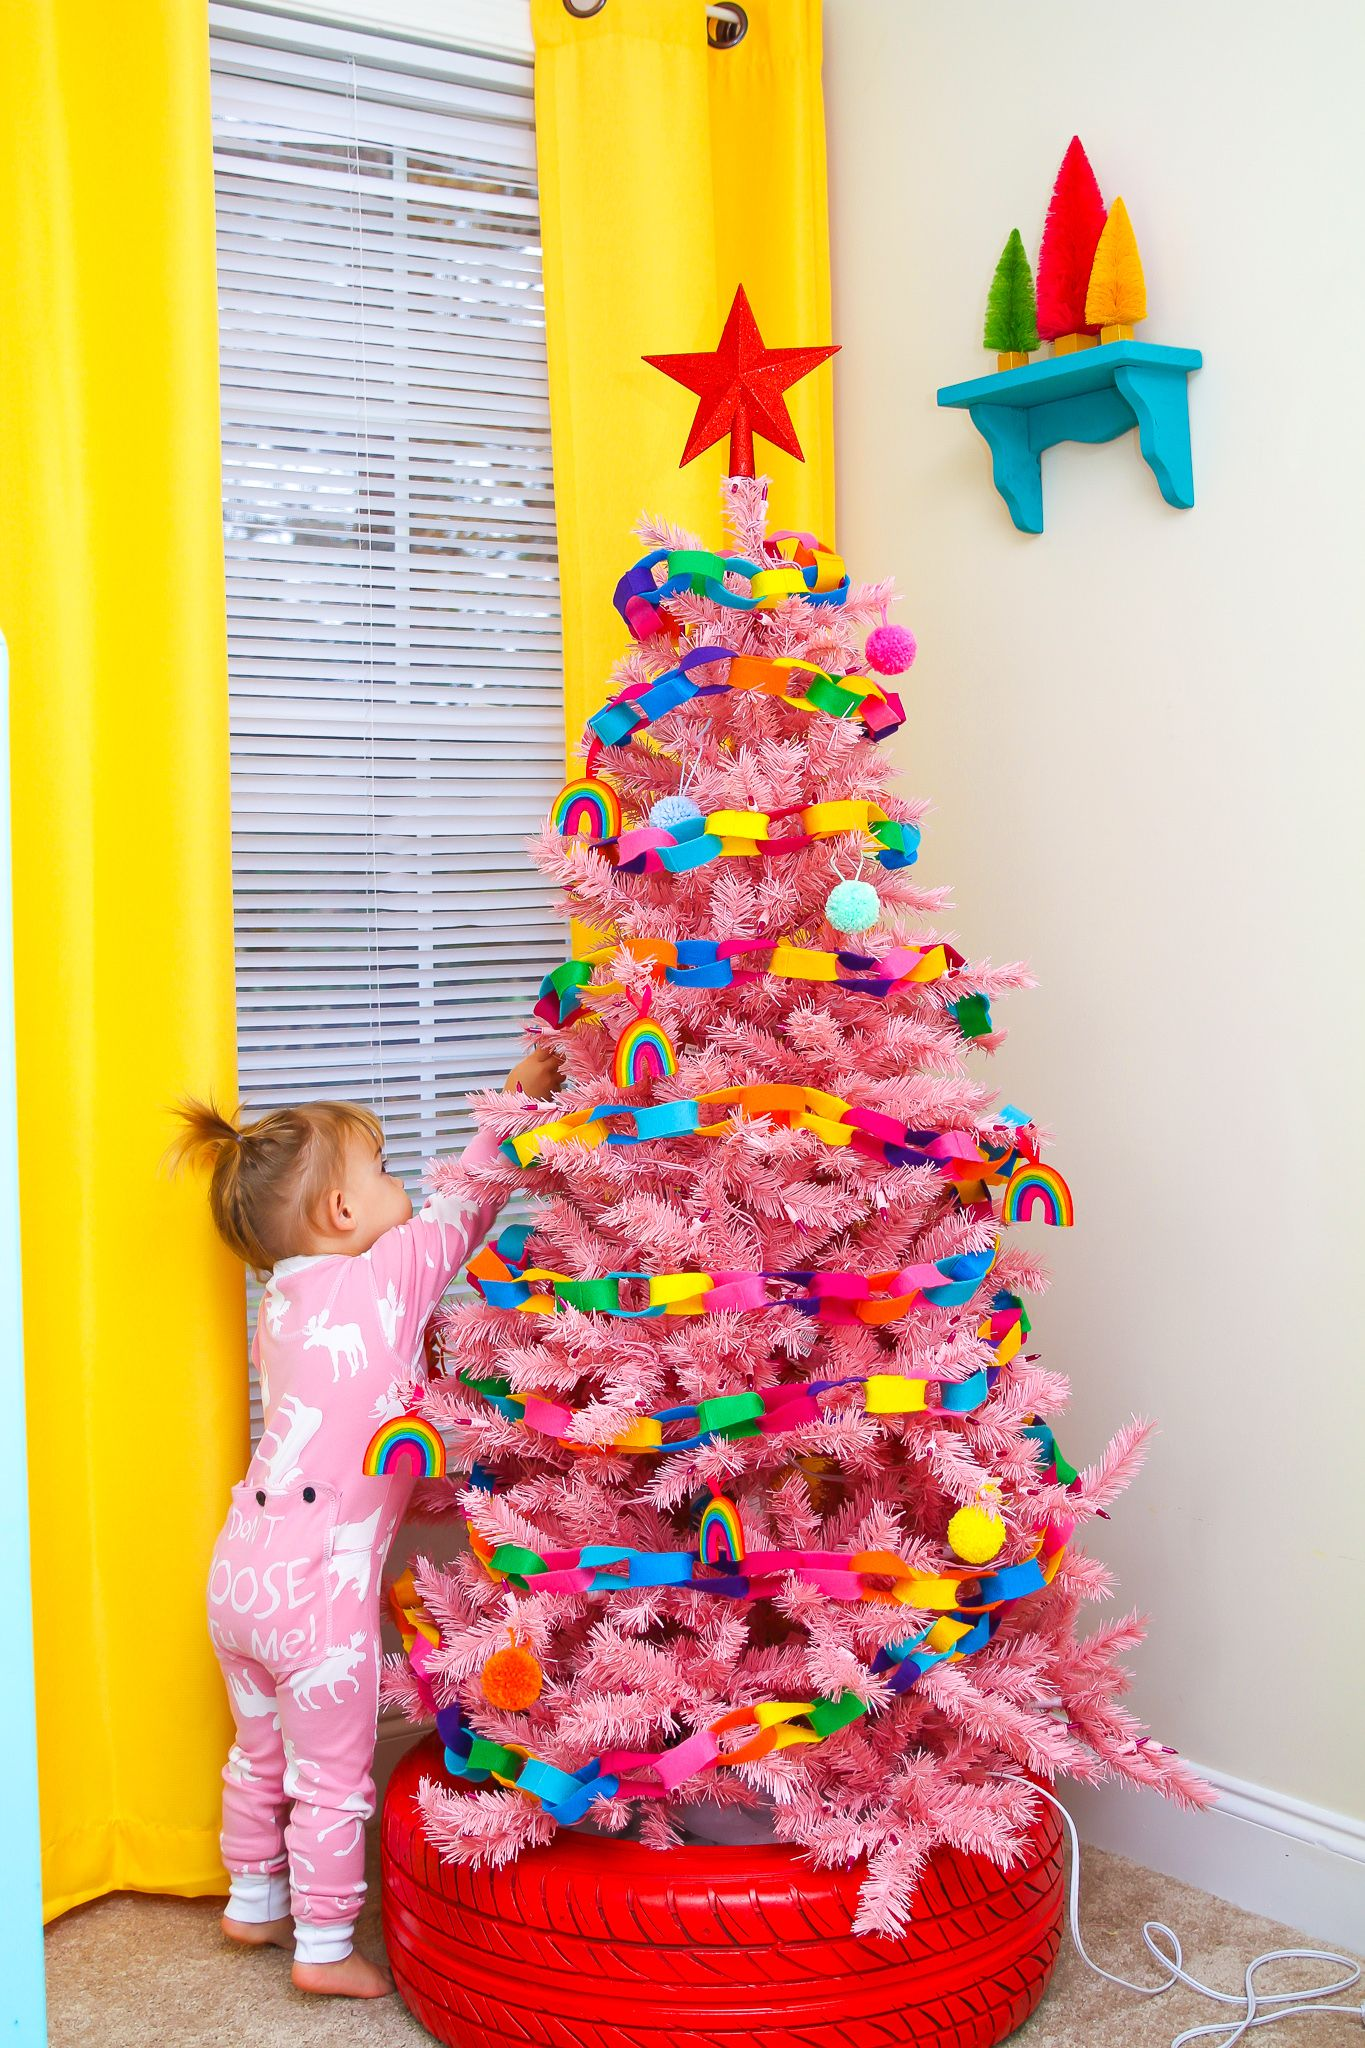 Bright Colorful Christmas Trees For Kids Christmas Trees For Kids Toddler Christmas Tree Colorful Christmas Tree